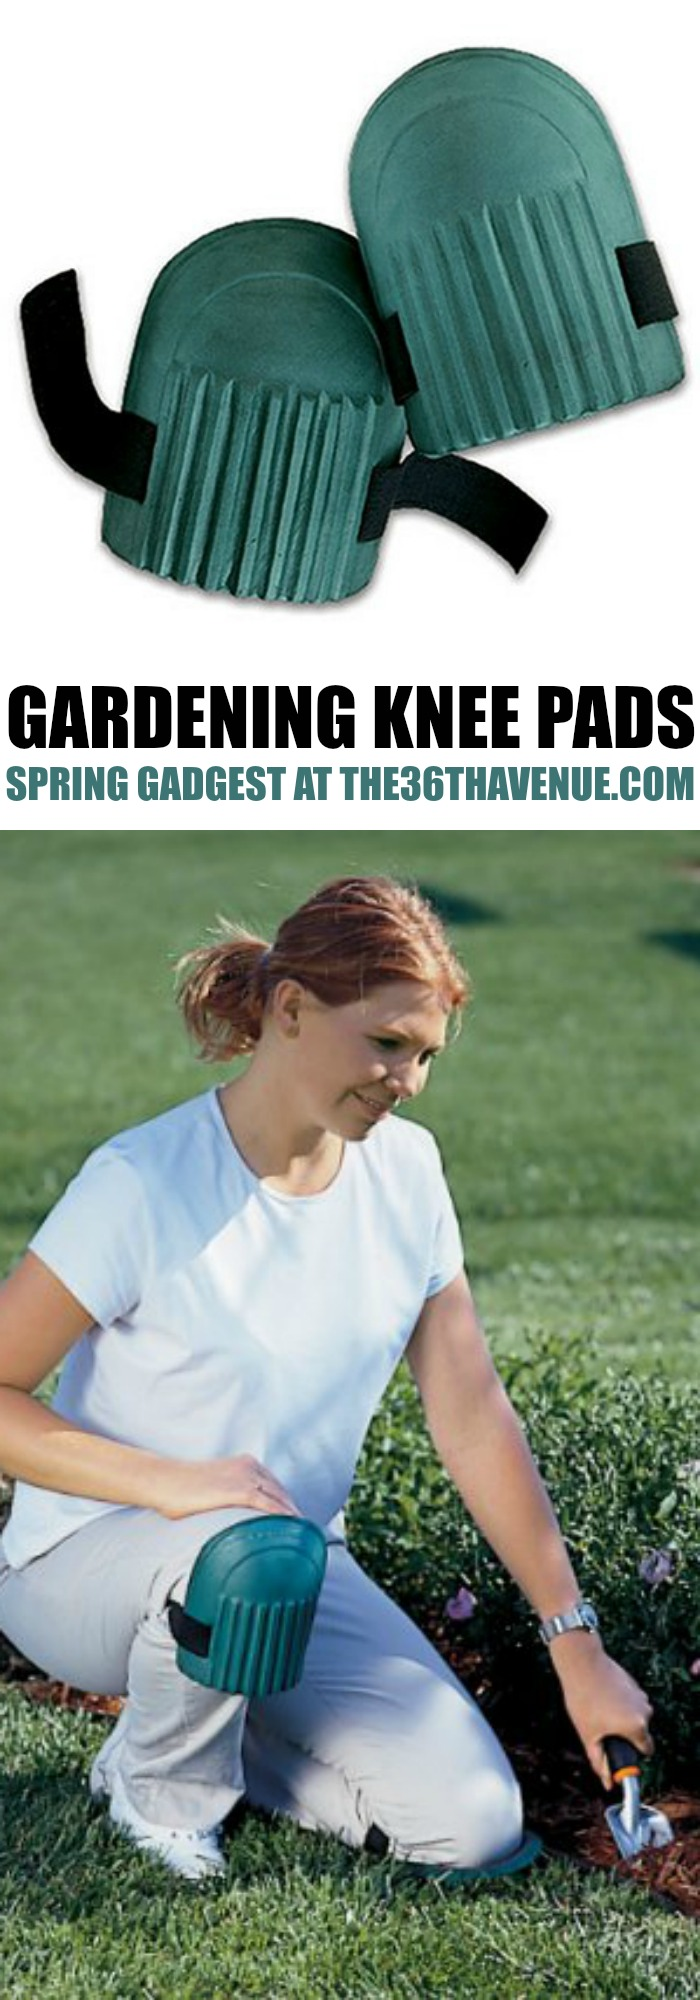 Knee Pads at the36thavenue.com